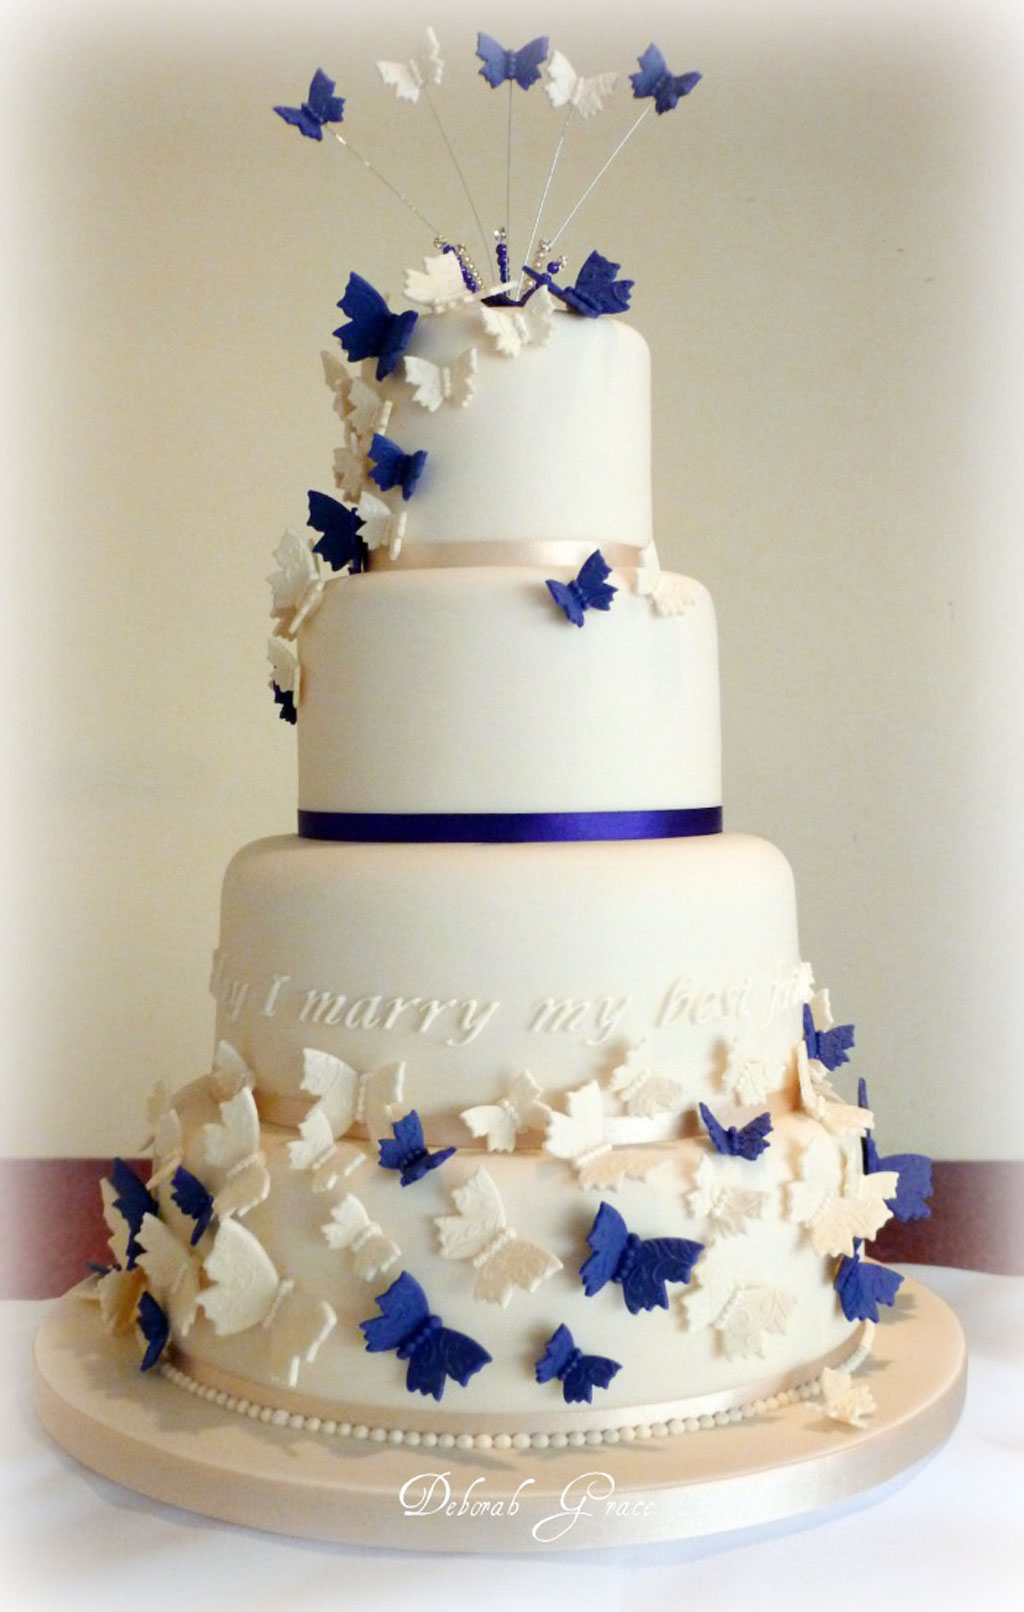 Cake Design Decoration : Butterfly Wedding Cakes Decoration Wedding Cake - Cake ...